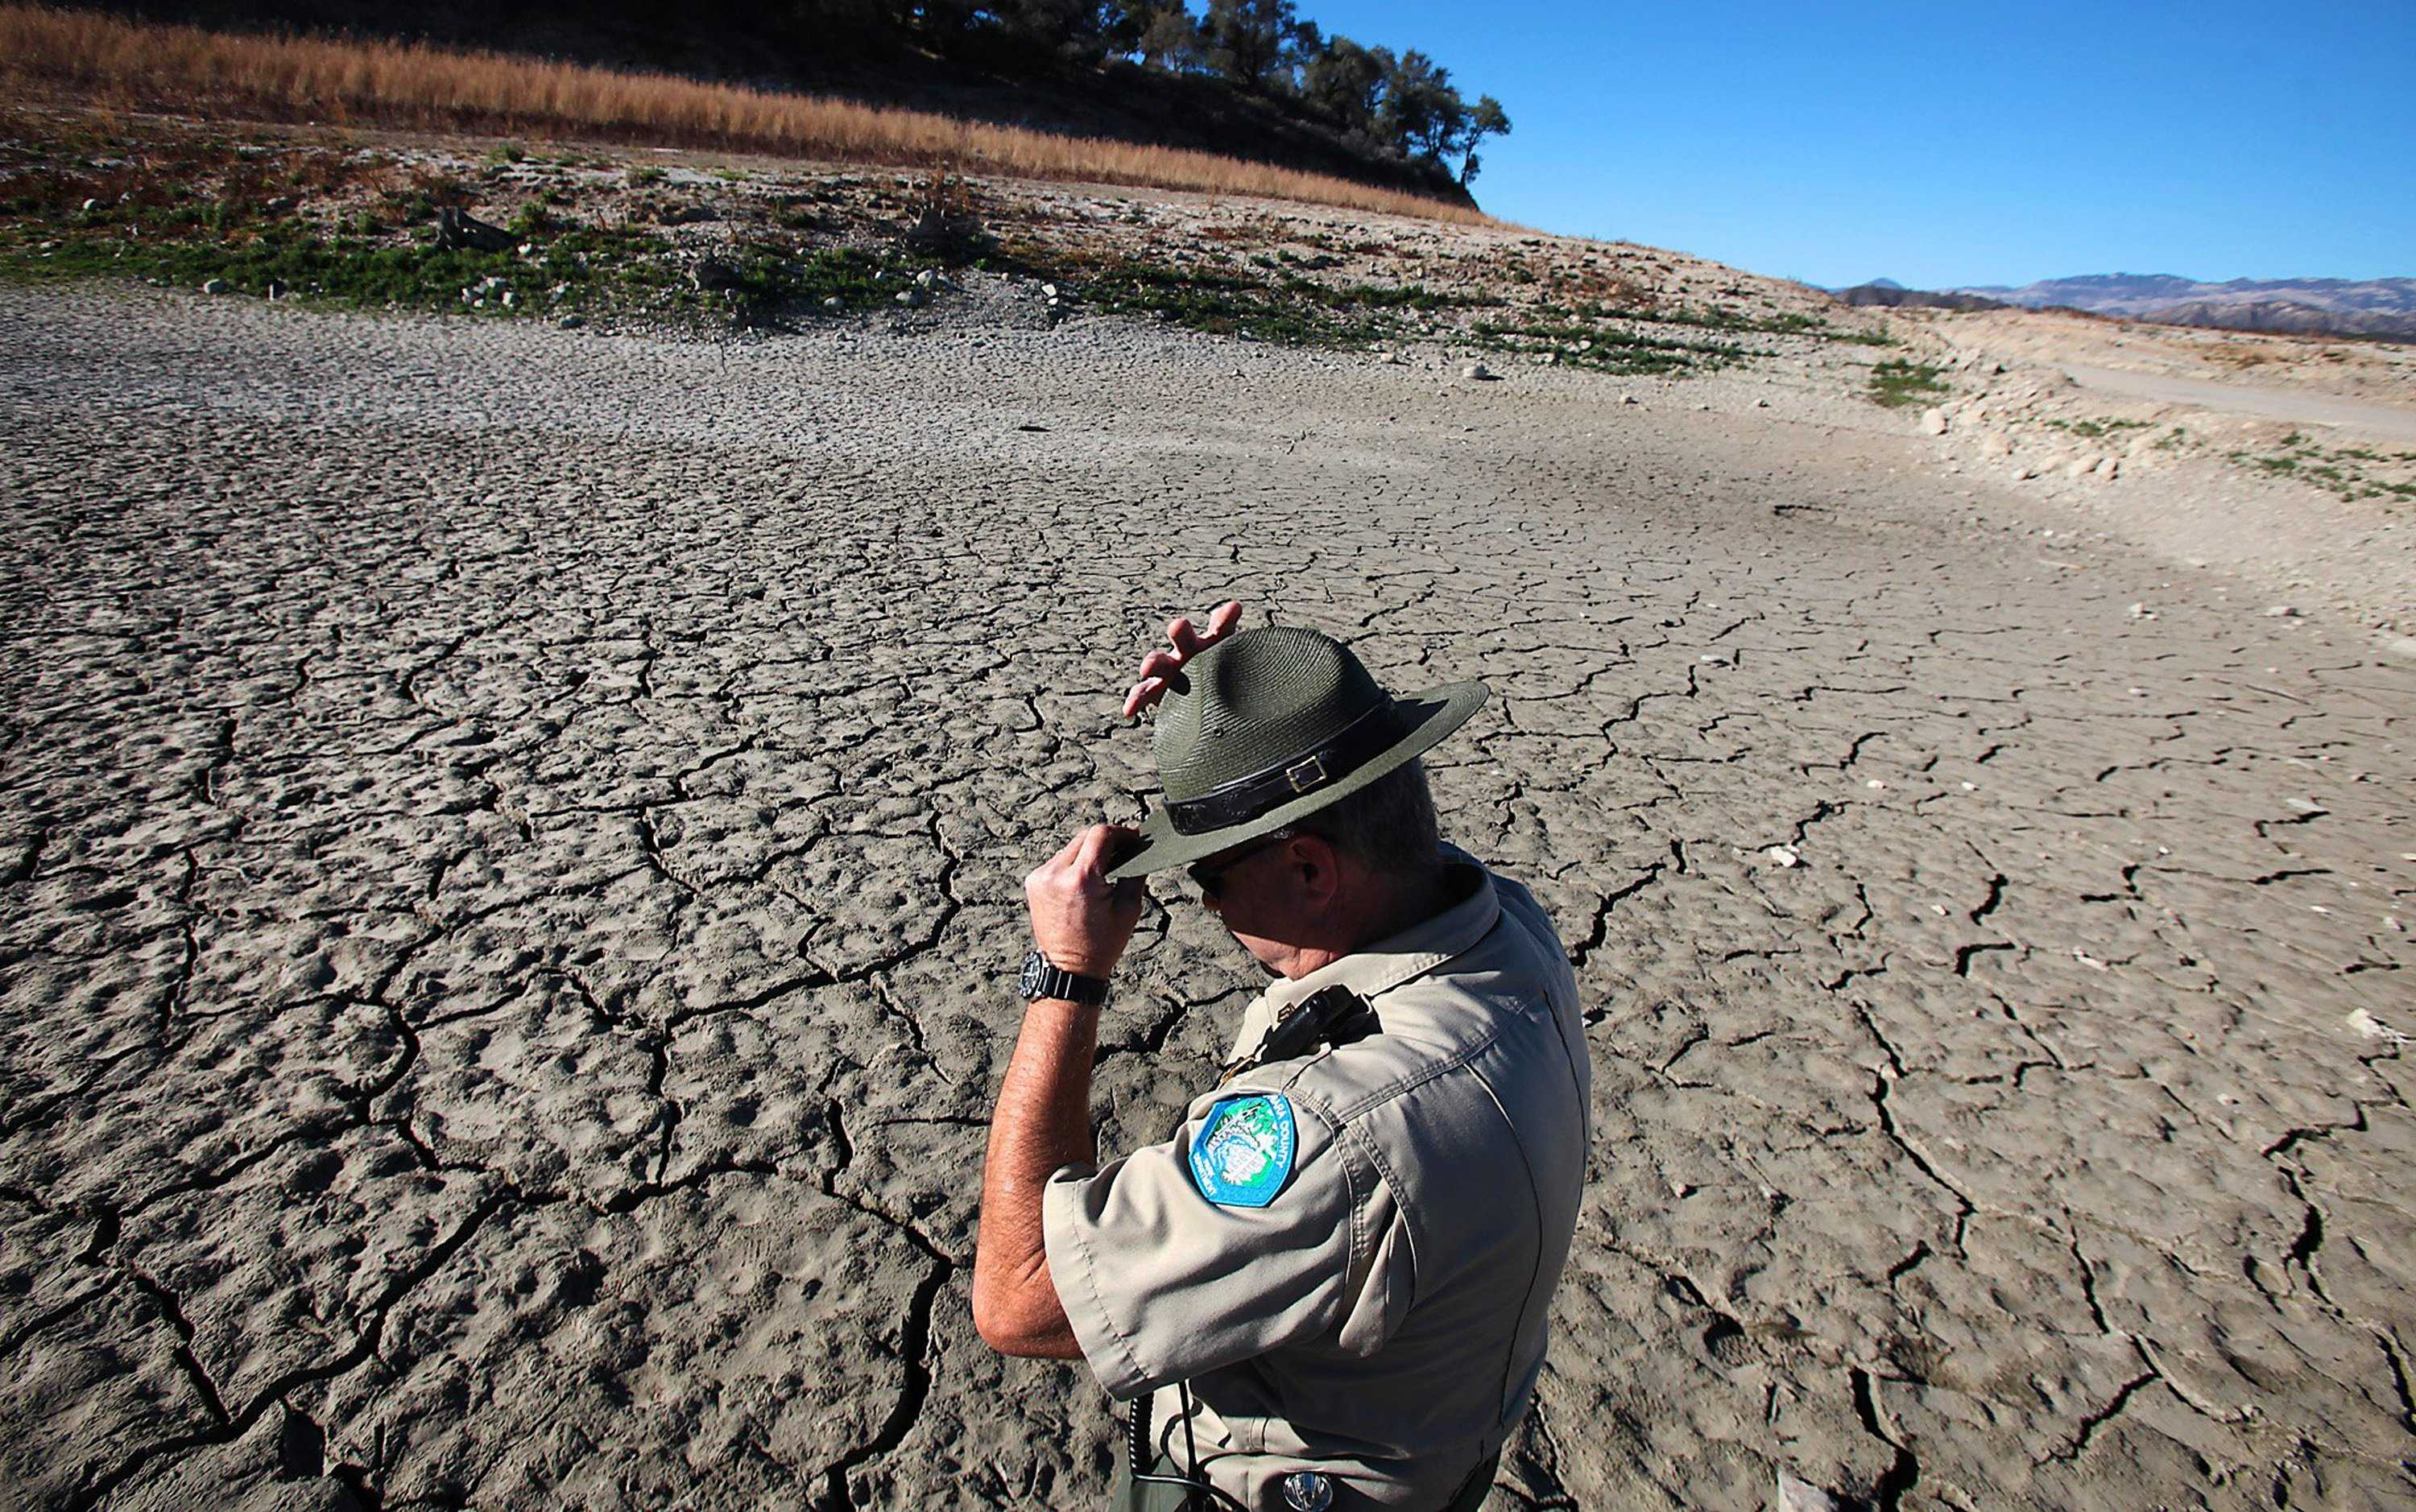 Santa Barbara County Parks Department  ranger Jeff Bozarth stands in a dry bay on Lake Cachuma on January 14, 2014, in Santa Barbara County, Calif. The area was filled with water last March. (Brian van der Brug/Los Angeles Times/MCT)